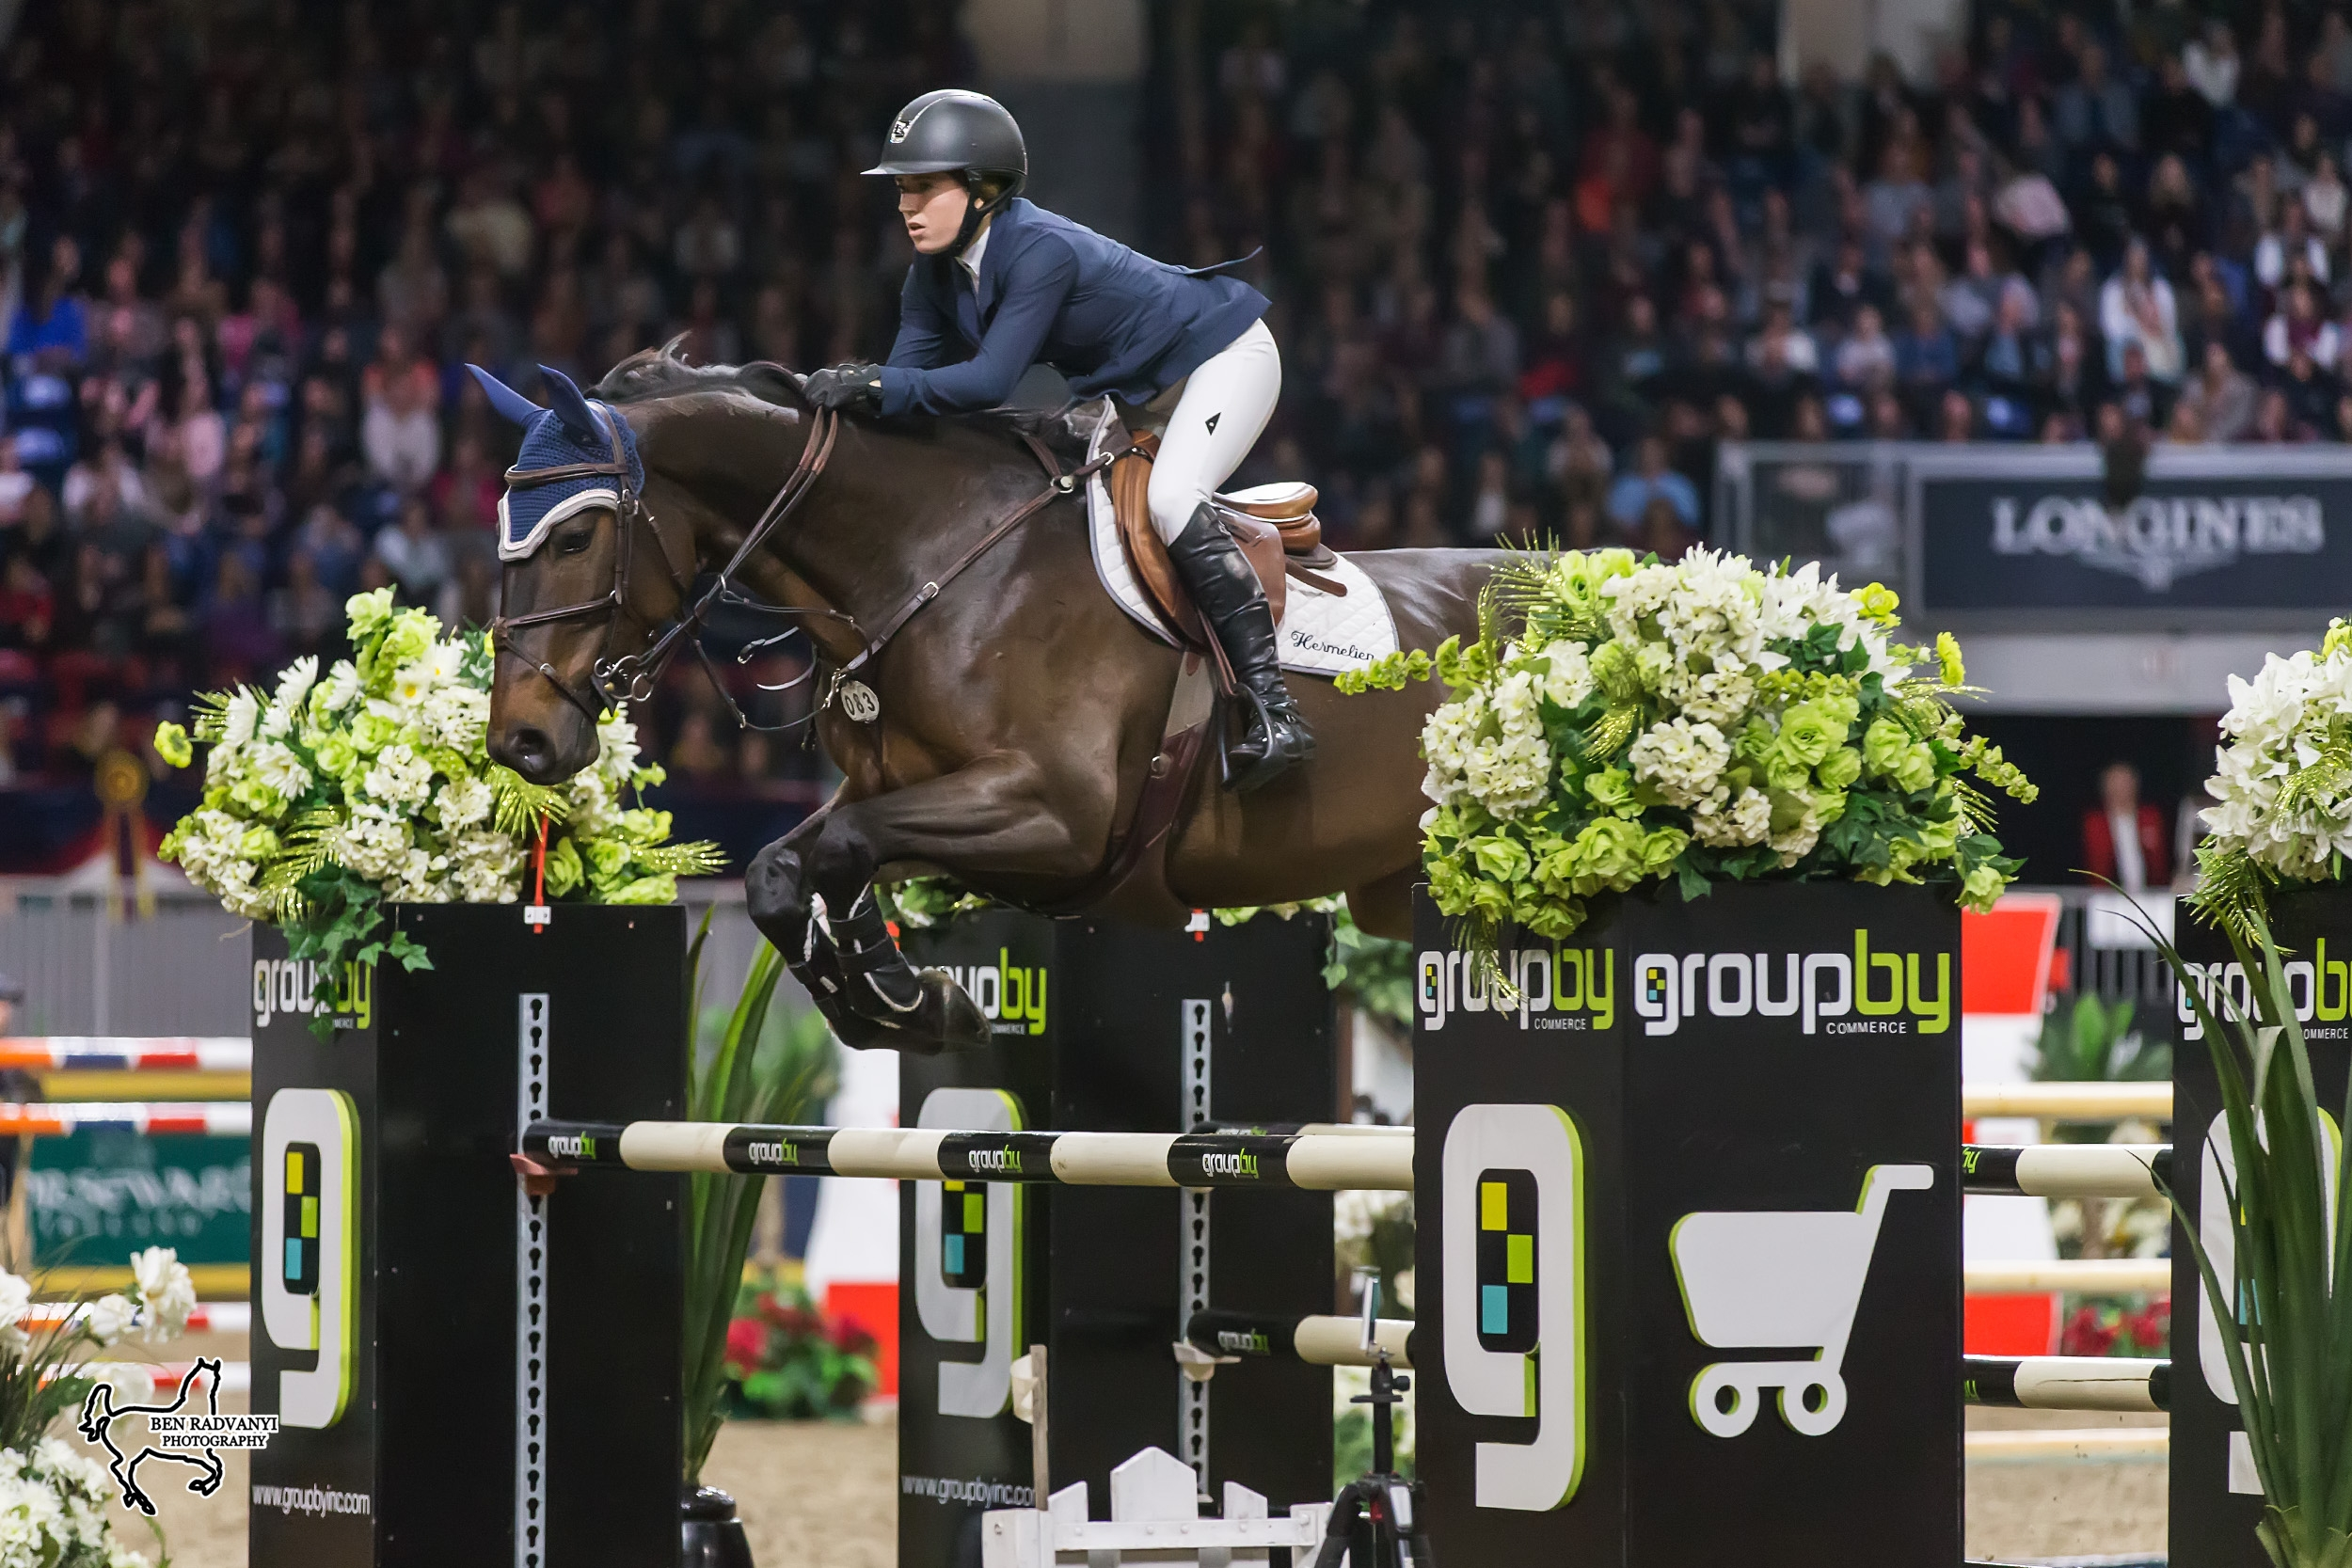 Ali Ramsay of Victoria, BC, was third in the 2017 Canadian Show Jumping Championship riding Hermelien VD Hooghoeve on Saturday, November 4, at the Royal Horse Show in Toronto, ON.<br><b>Photo by <a href='http://benradvanyi.photoshelter.com'target='_blank'>Ben Radvanyi Photography</a></b>